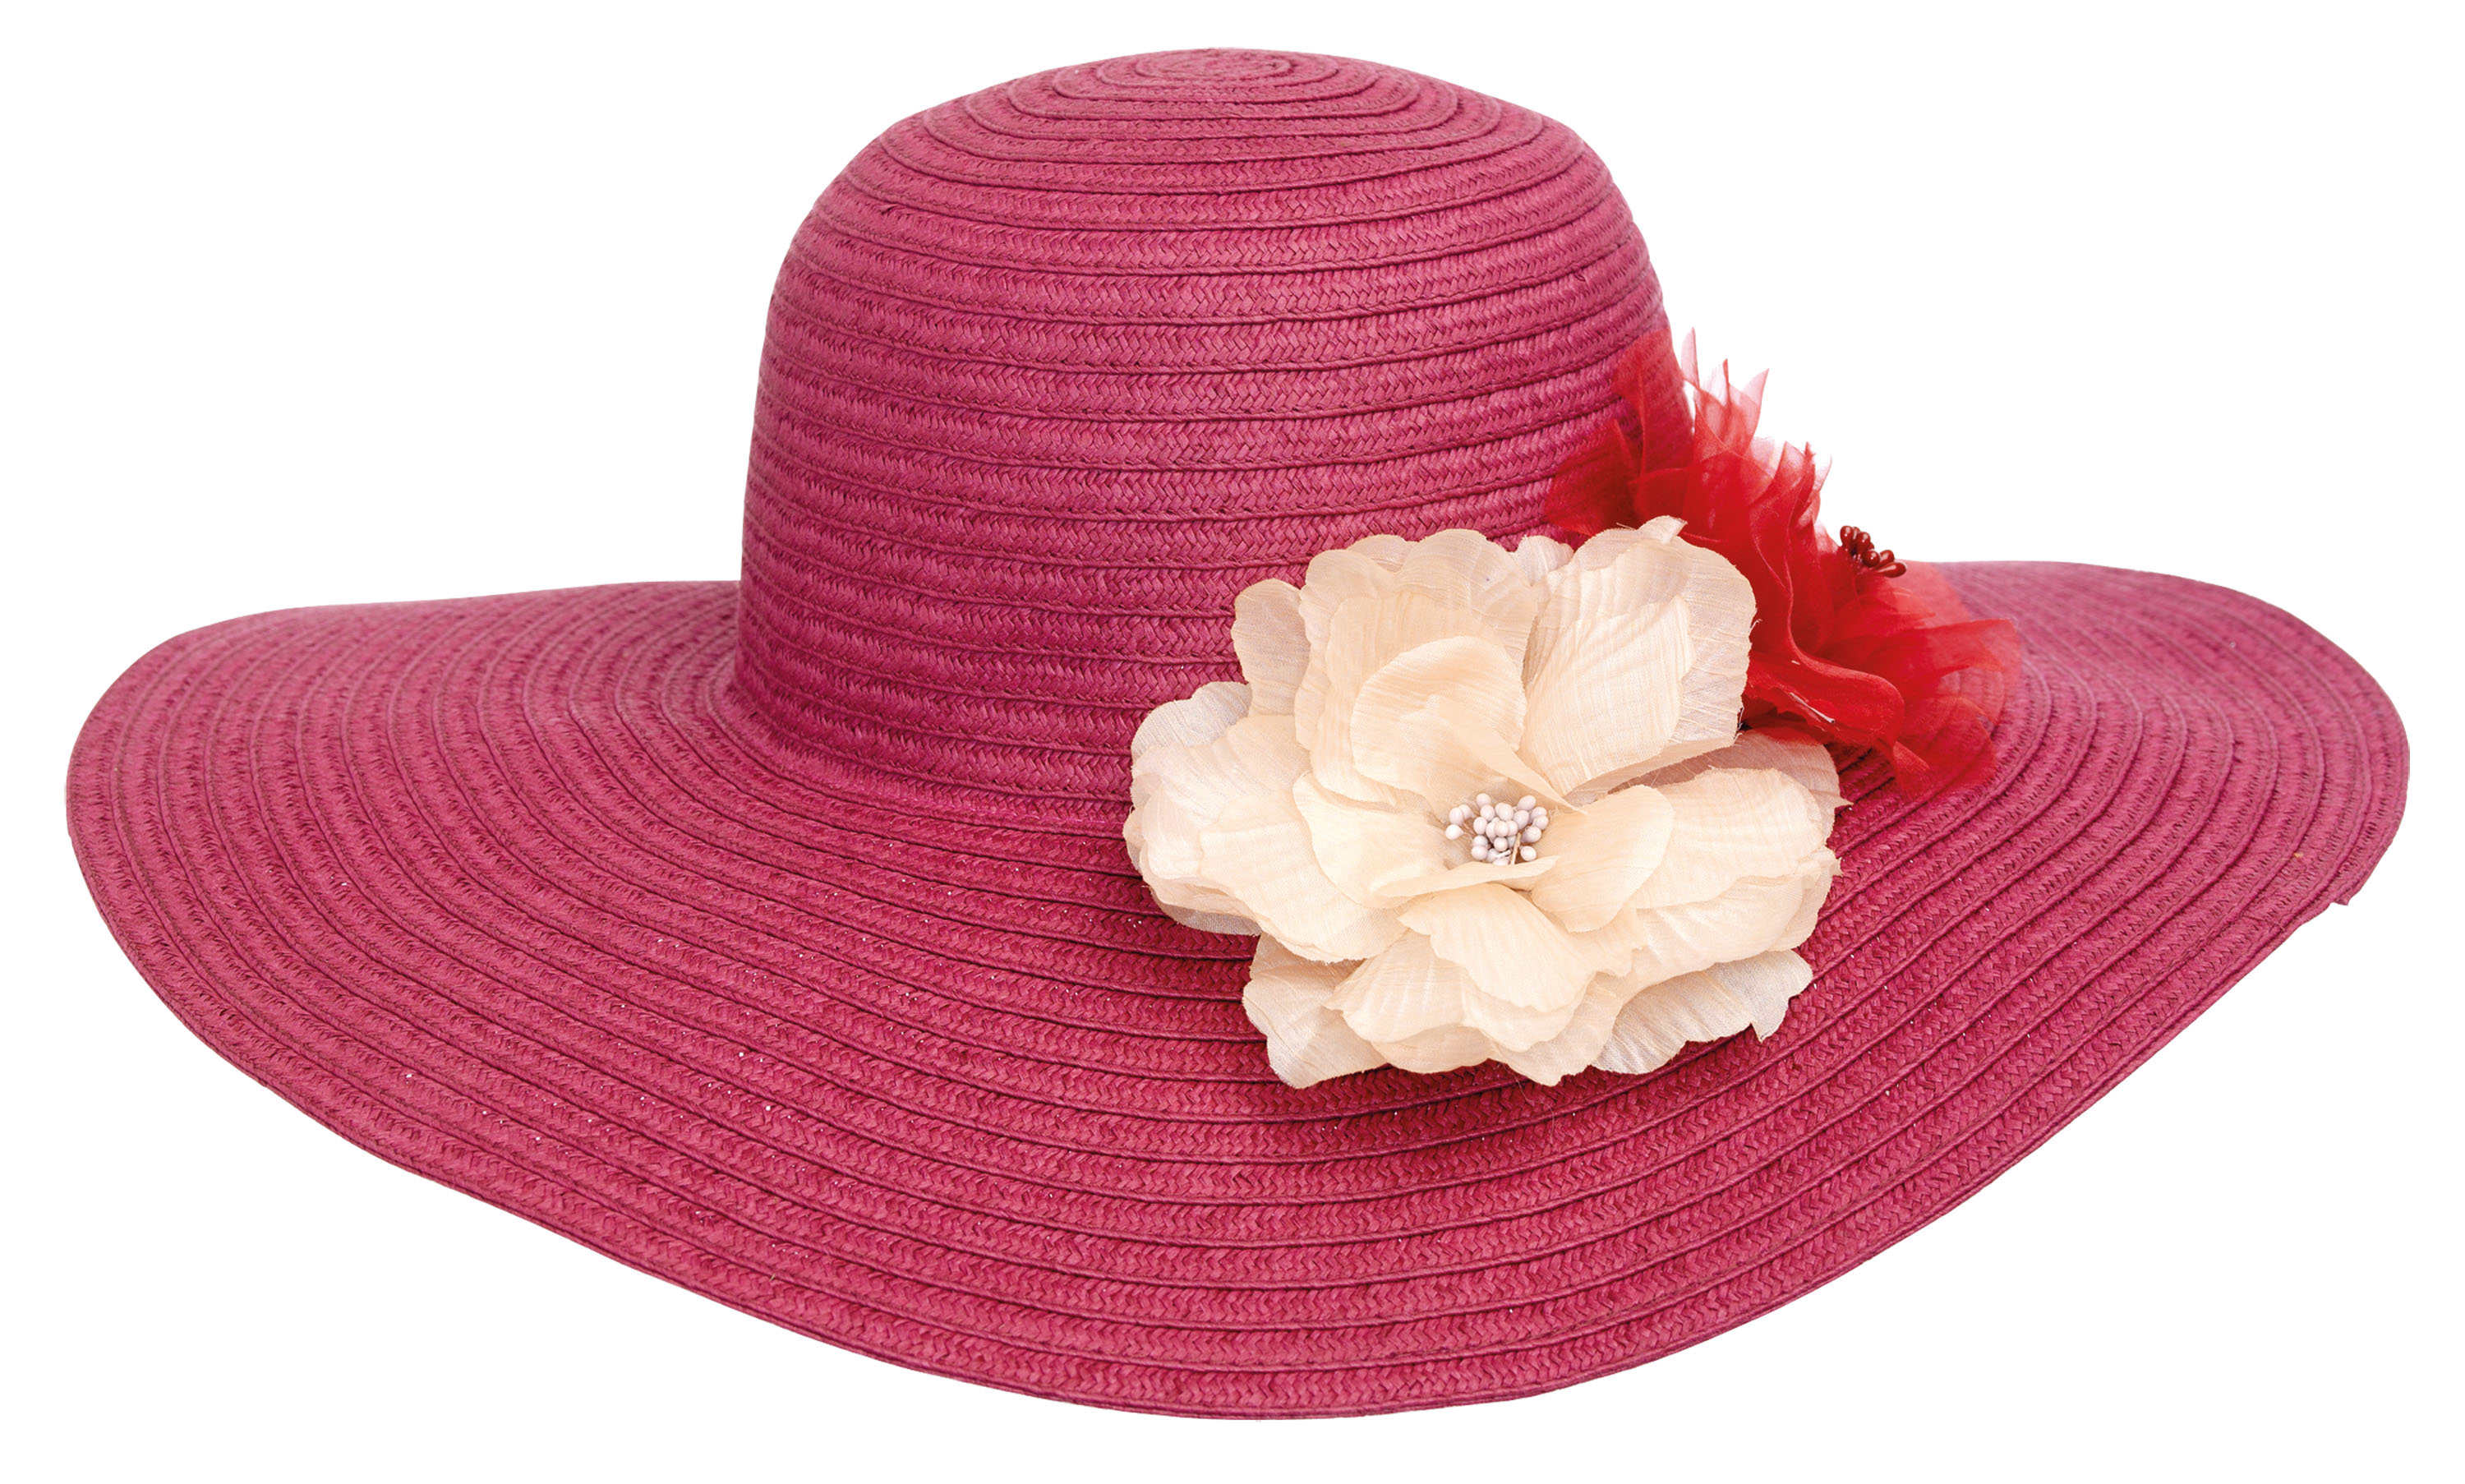 ... hat | Fab after Fifty | Information and inspiration for women over 50